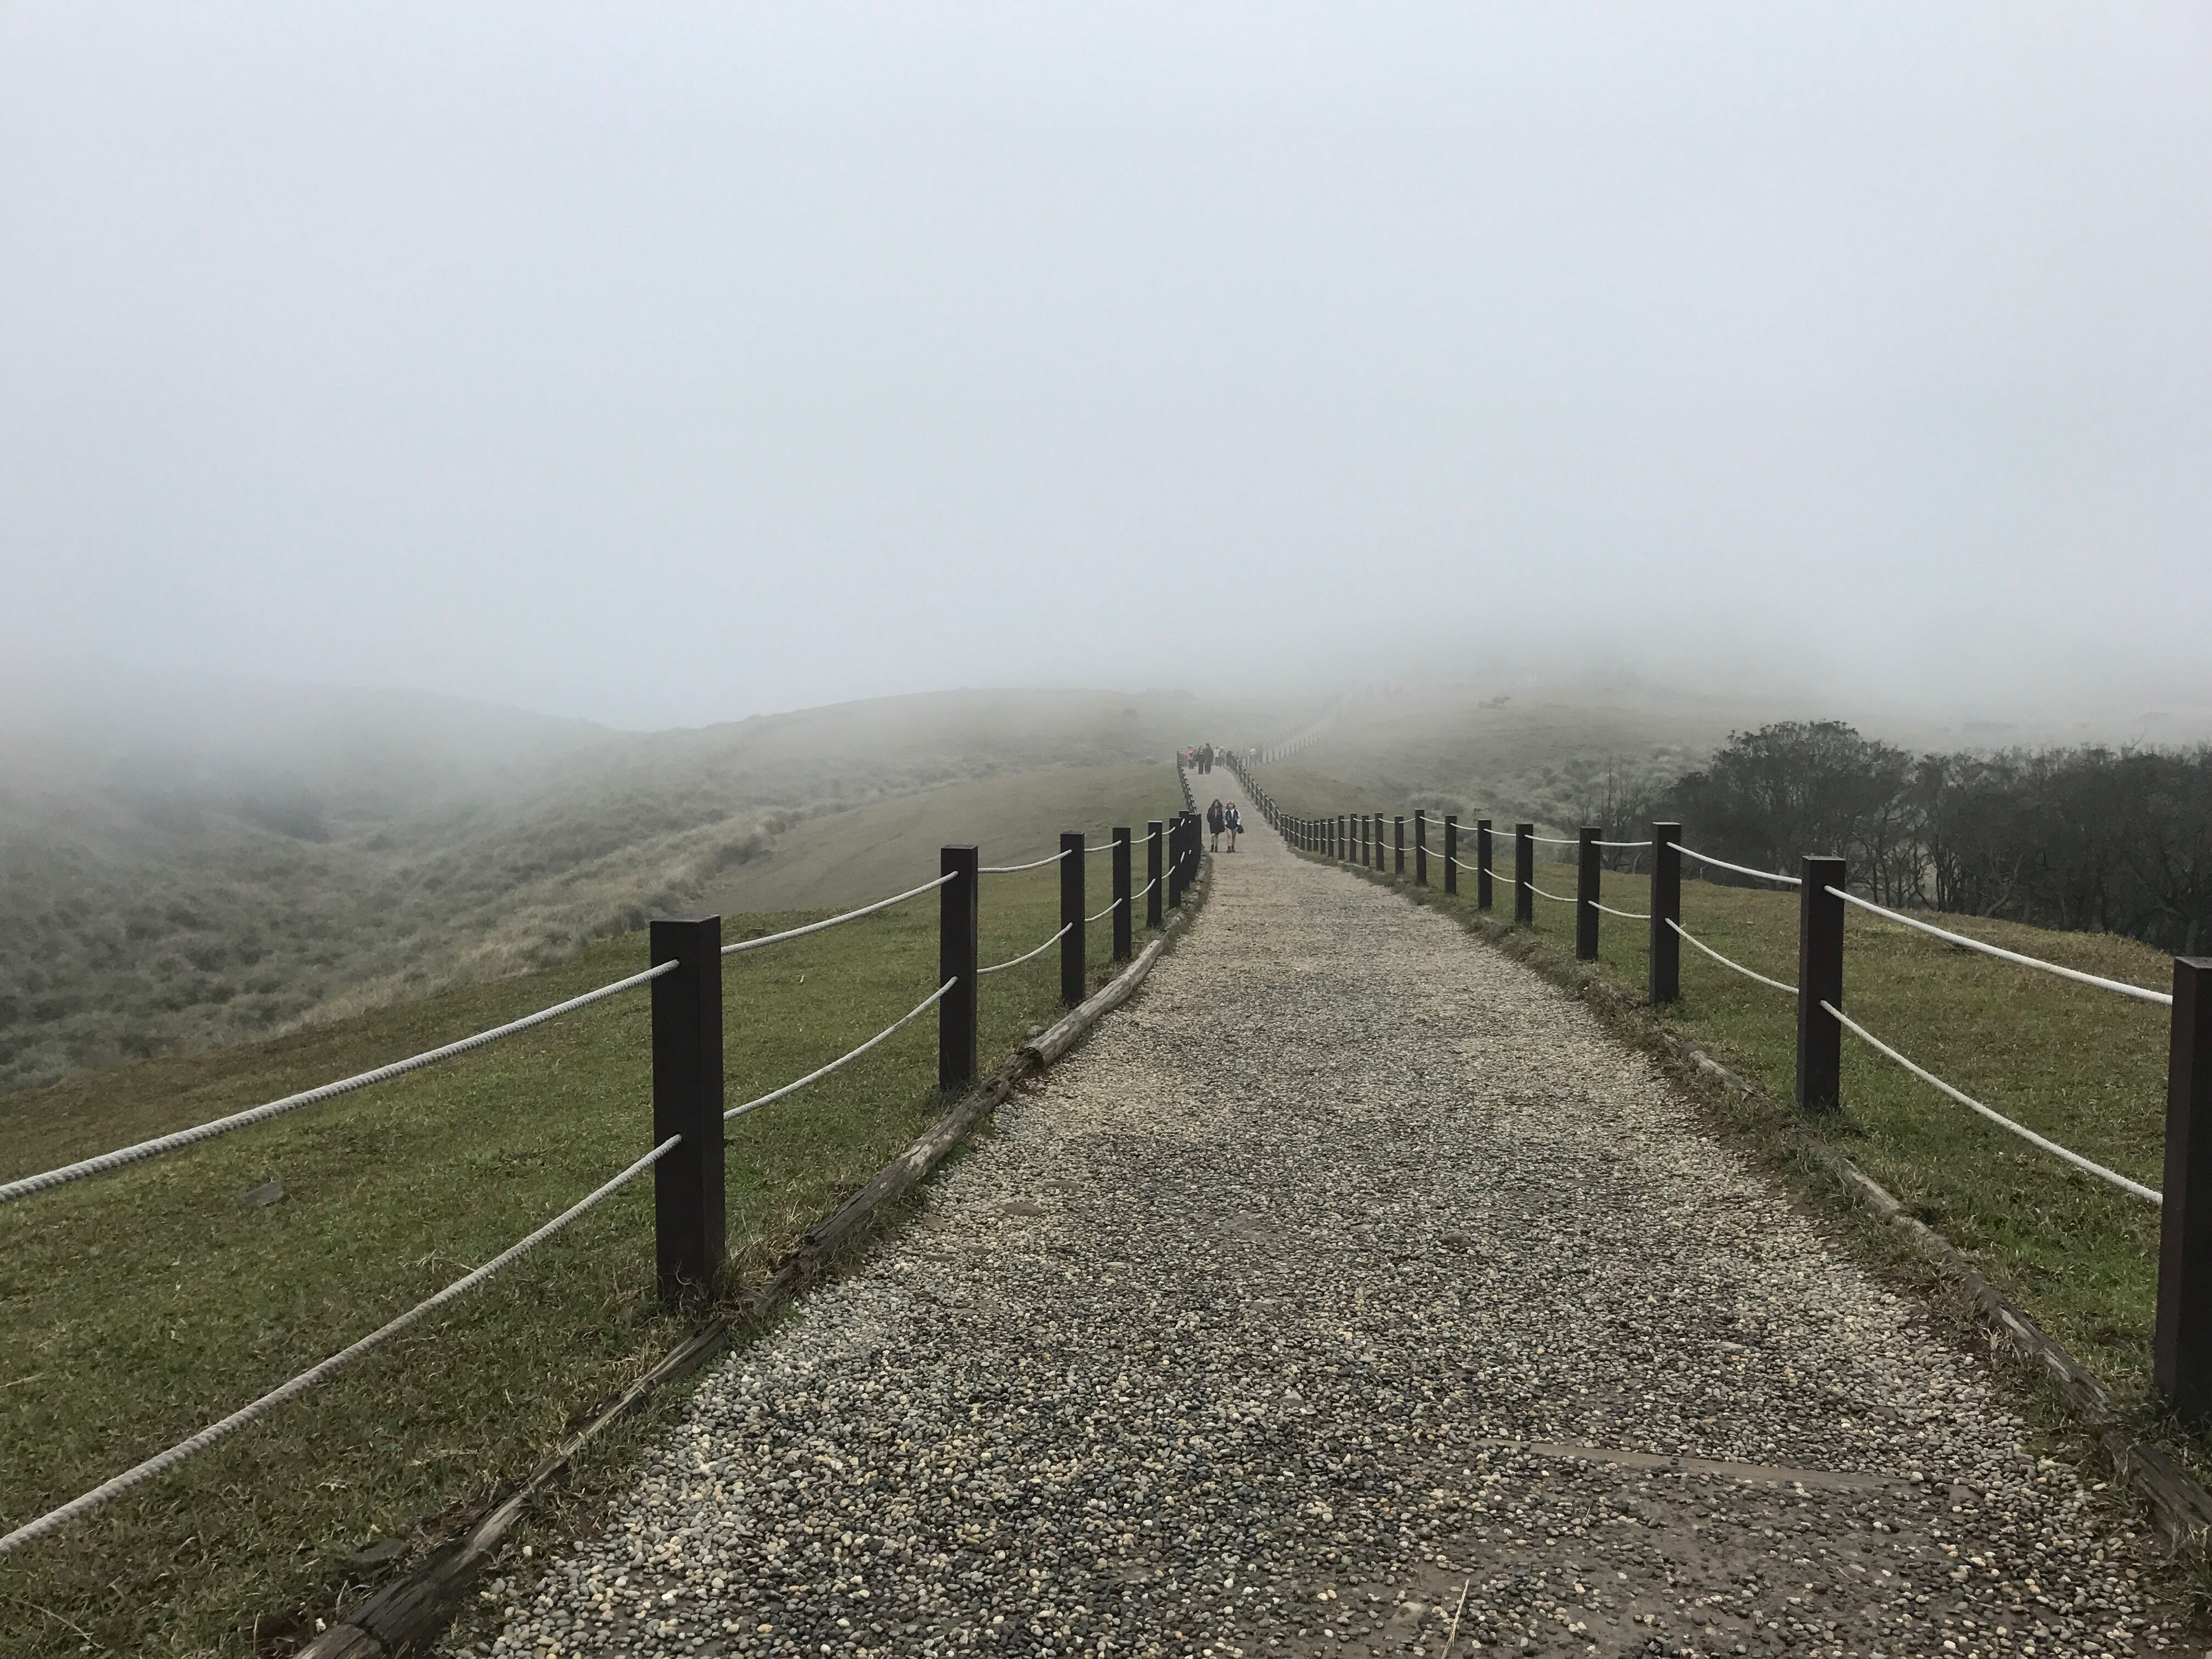 fence, nature, fog, tranquil scene, tranquility, railing, beauty in nature, landscape, scenics, day, mountain, outdoors, the way forward, grass, no people, picket fence, sky, mammal